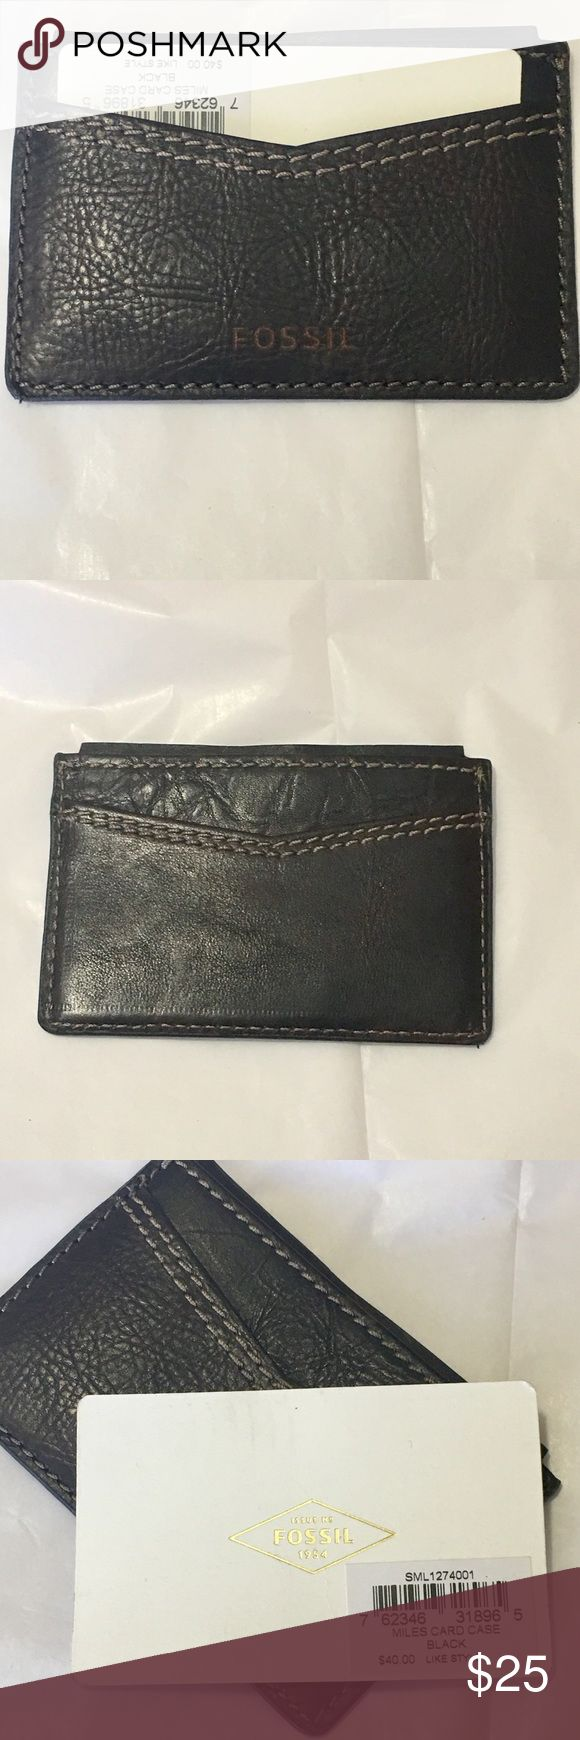 Fossil card holder Expresso leather with lighter contrasting stitching Fossil ID/card holder. Can hold multiple cards, ID, and some cash. Fossil Accessories Key & Card Holders